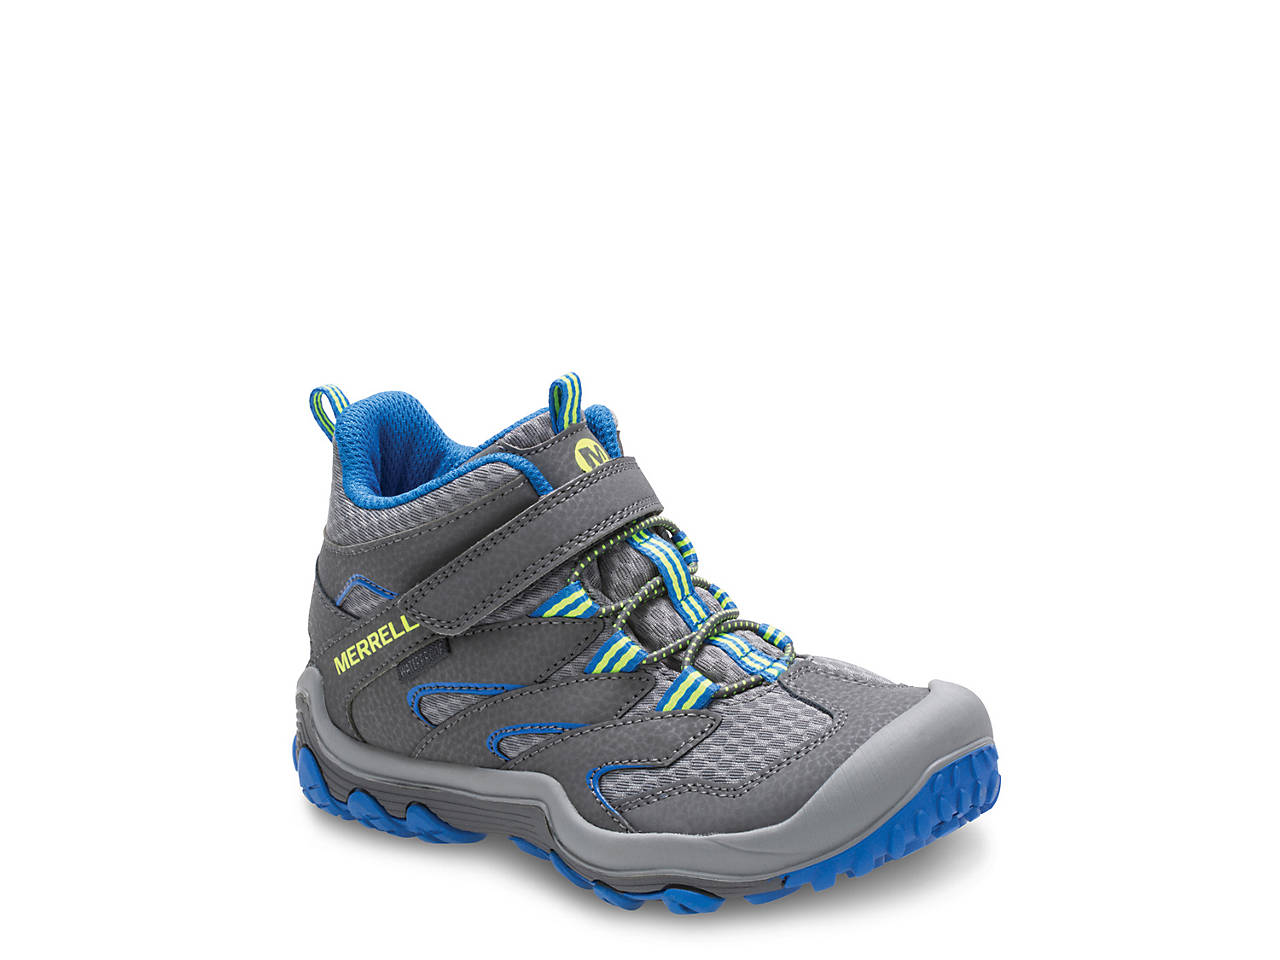 2d104f5e Chameleon 7 Access Toddler & Youth Hiking Boot